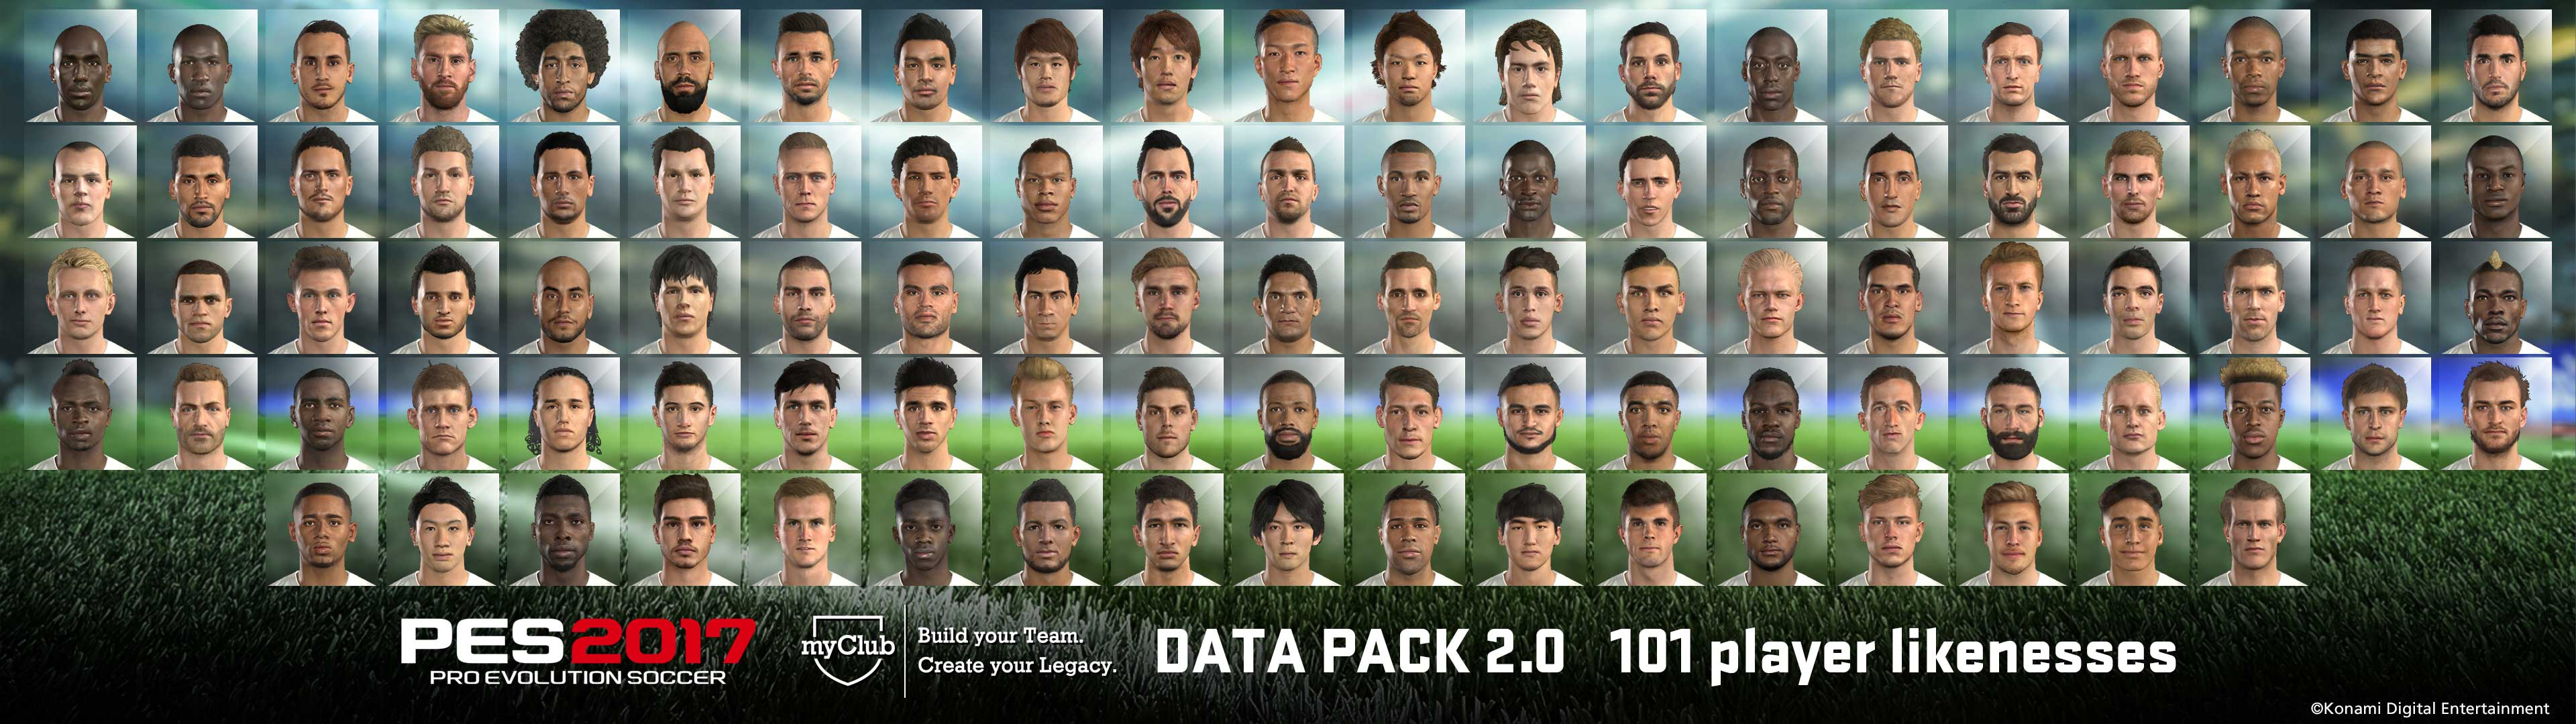 pes2017_dp2_playerlikenesses_l